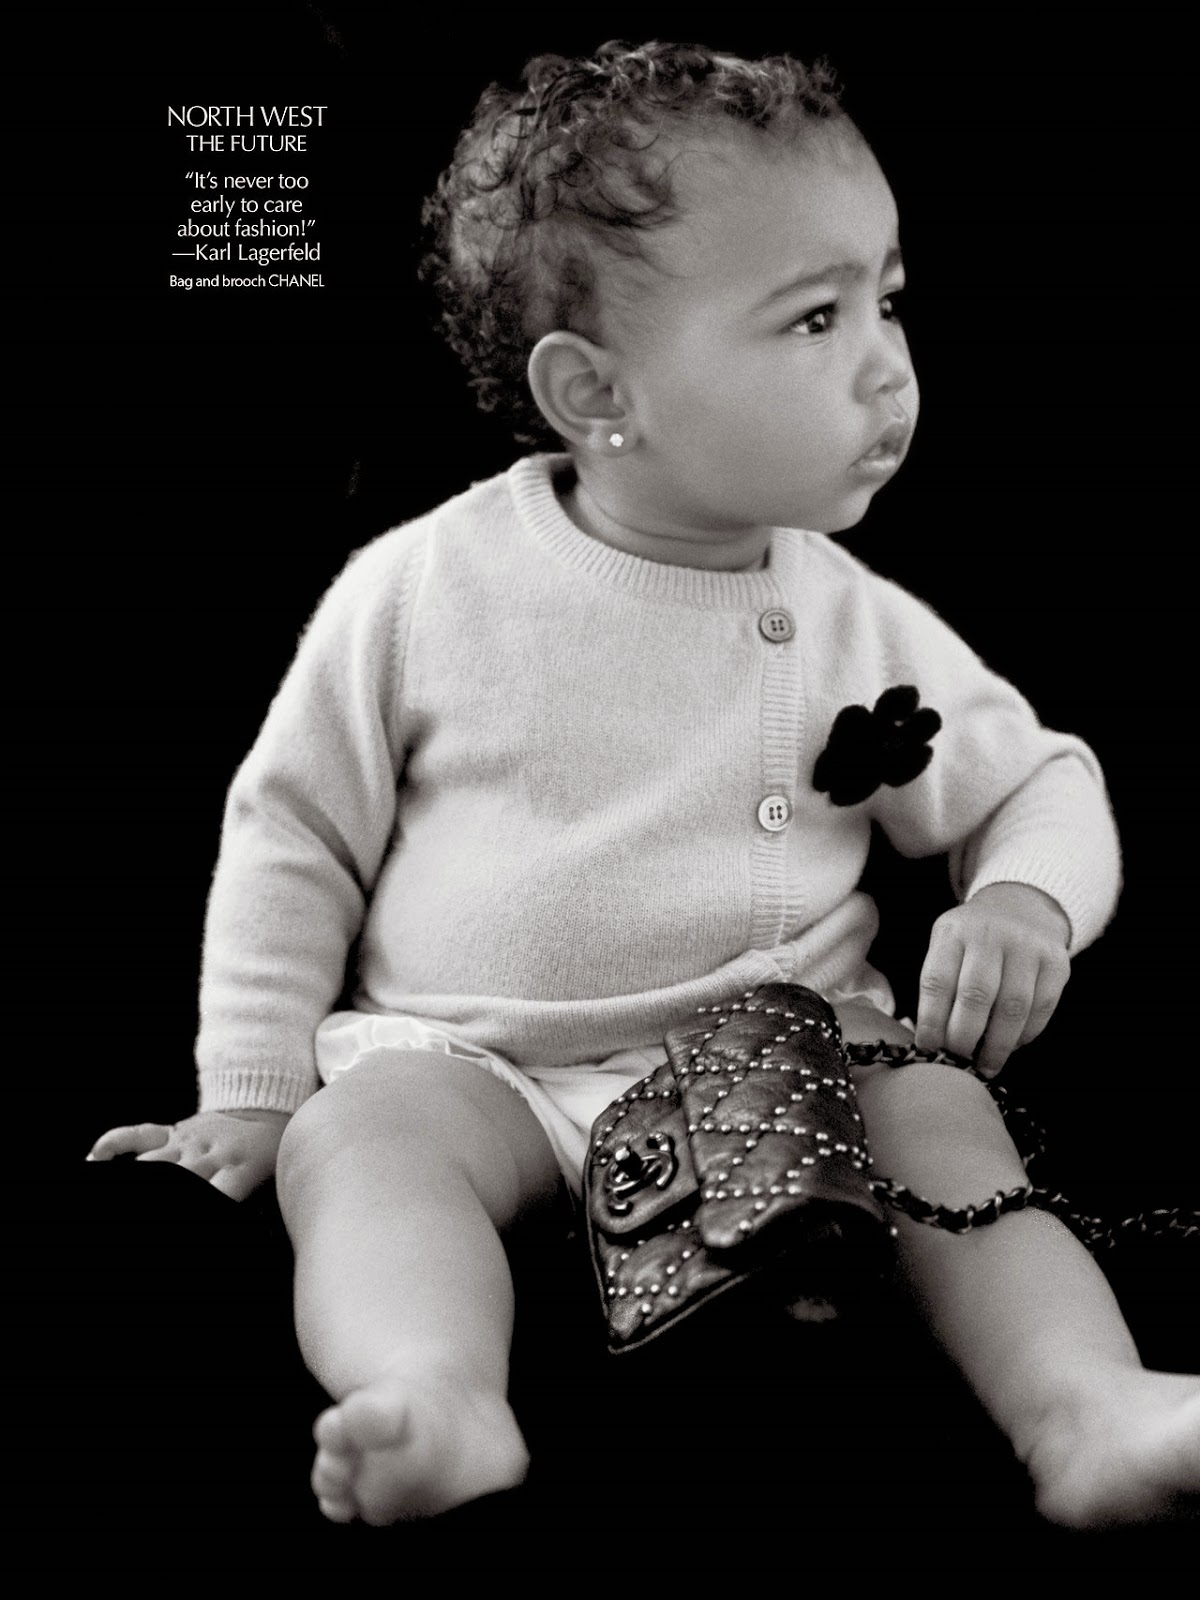 One year old North West wears Chanel for her modelling debut for the CR Fashion Book